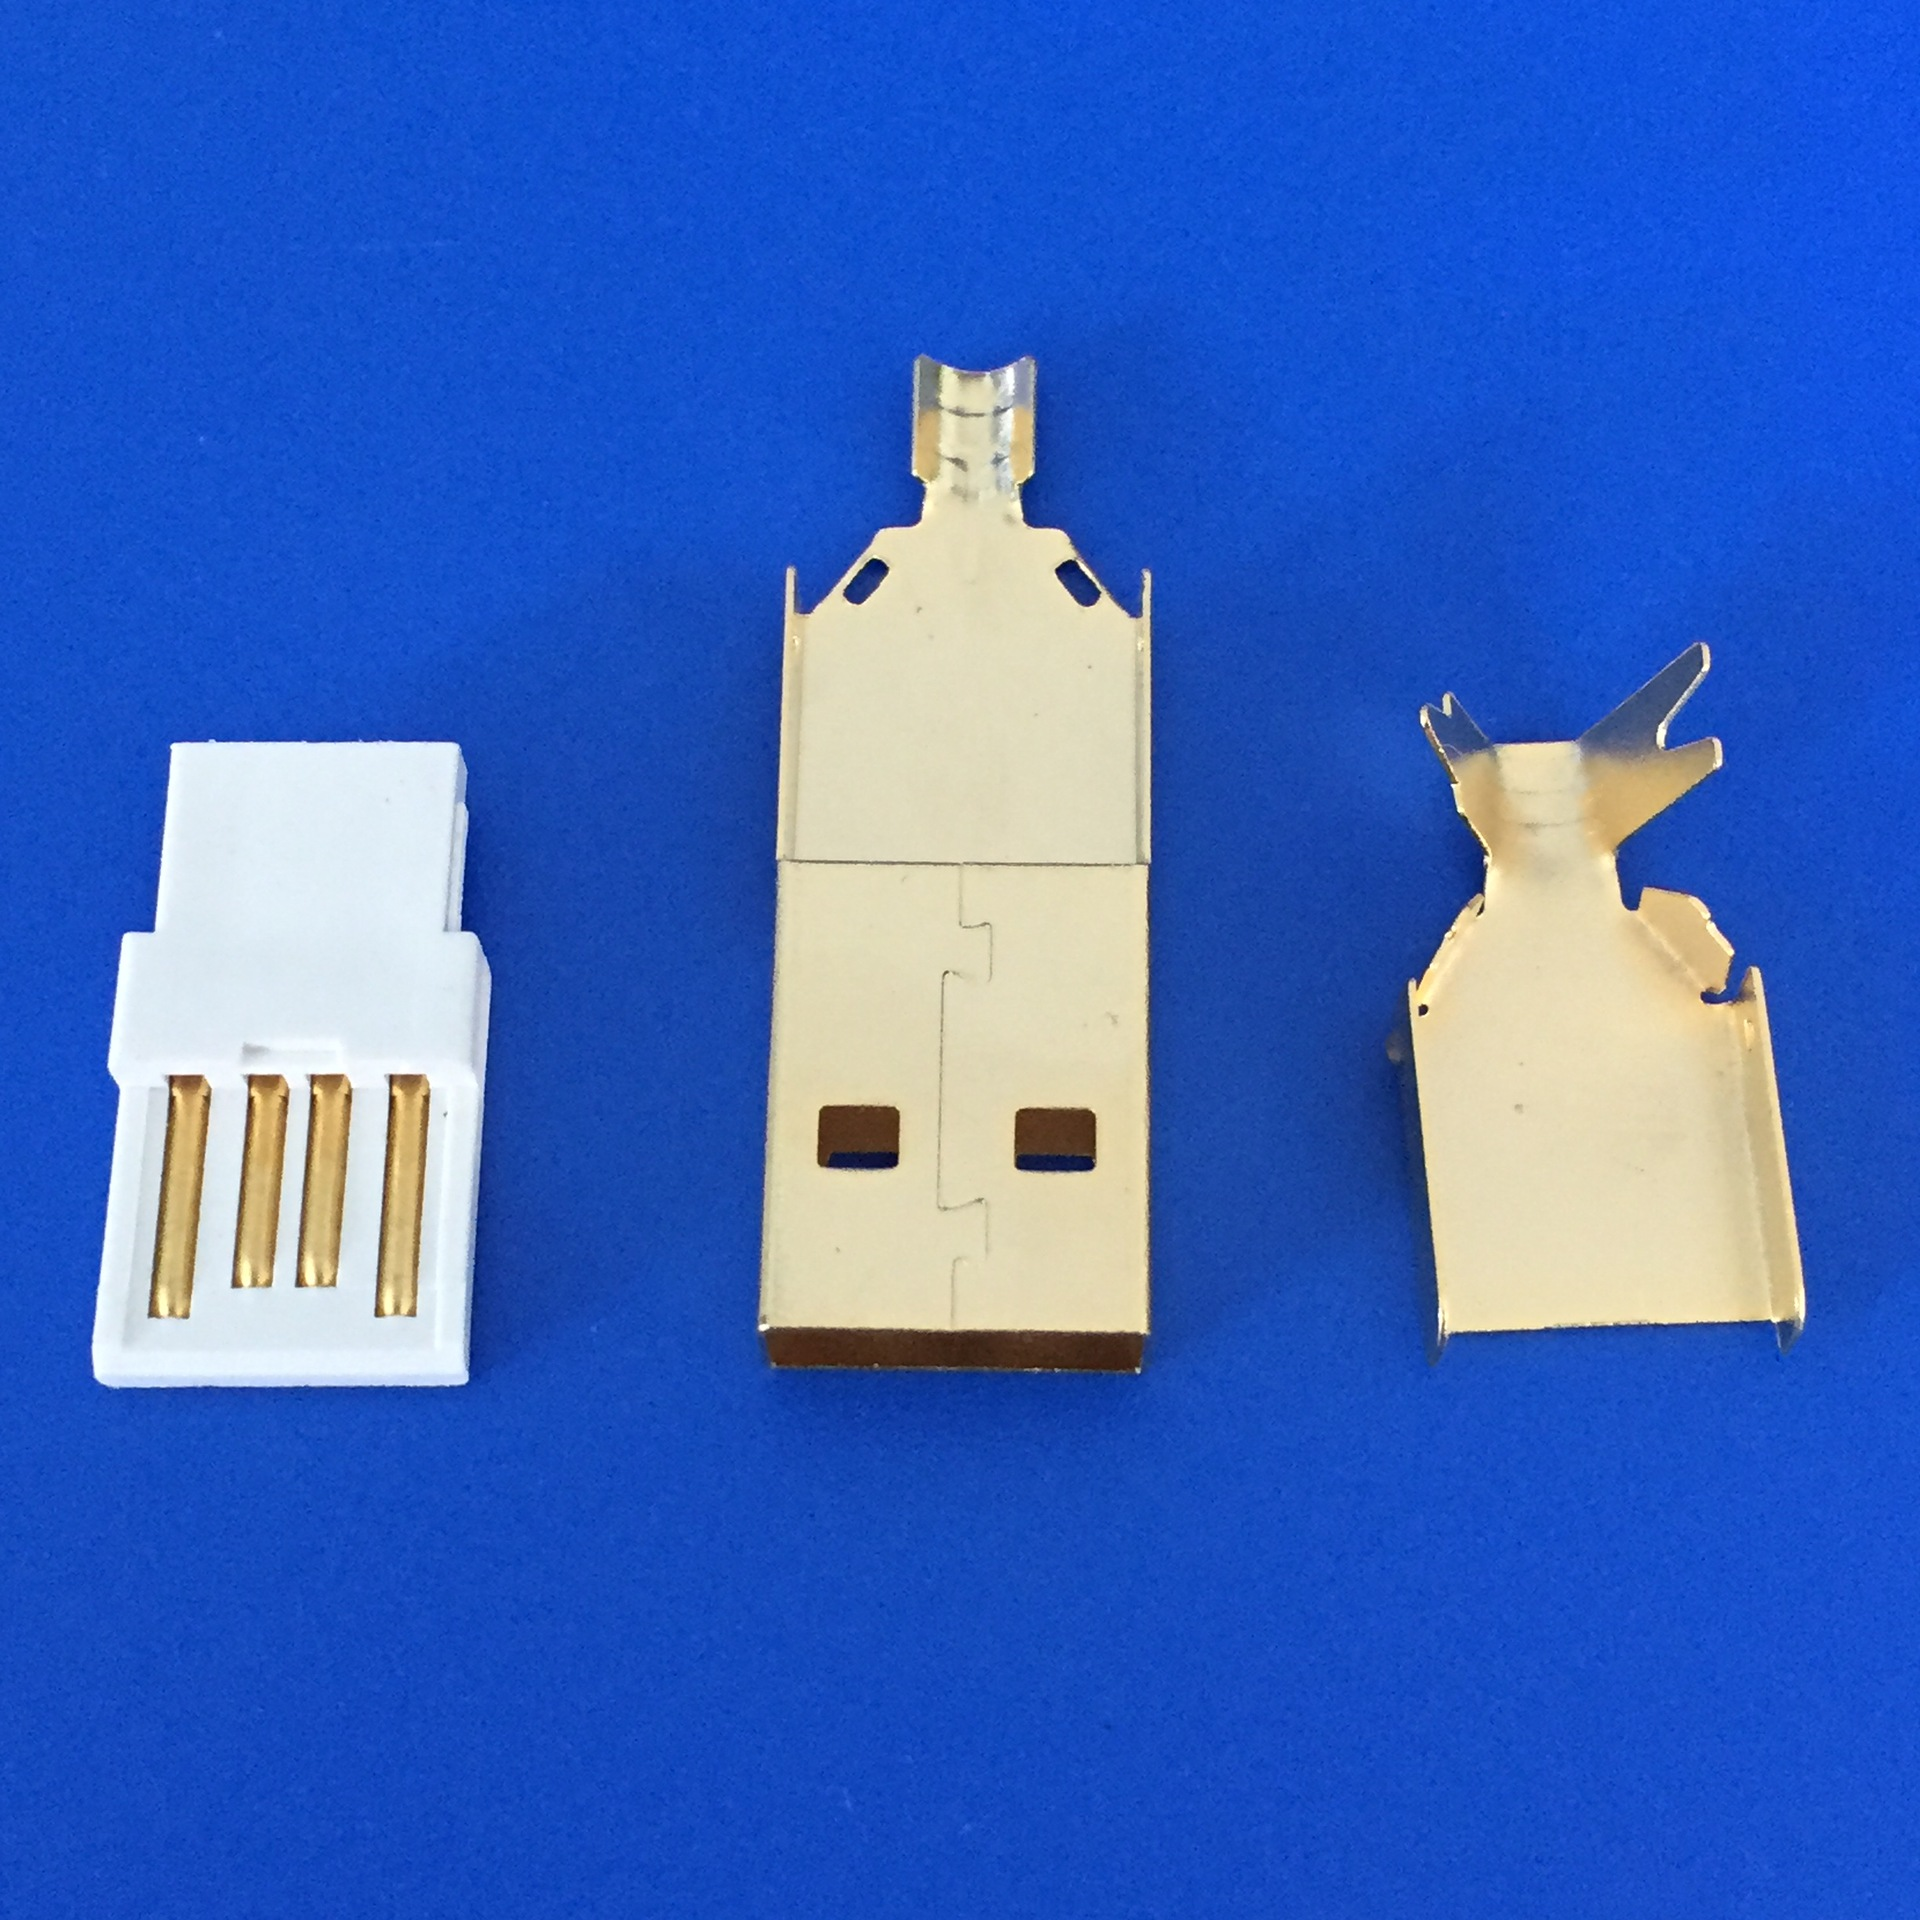 5pcs/lot Usb Connector Gold Plating DIY USB 2.0 A Type Male Plug Connector Wire Bonding